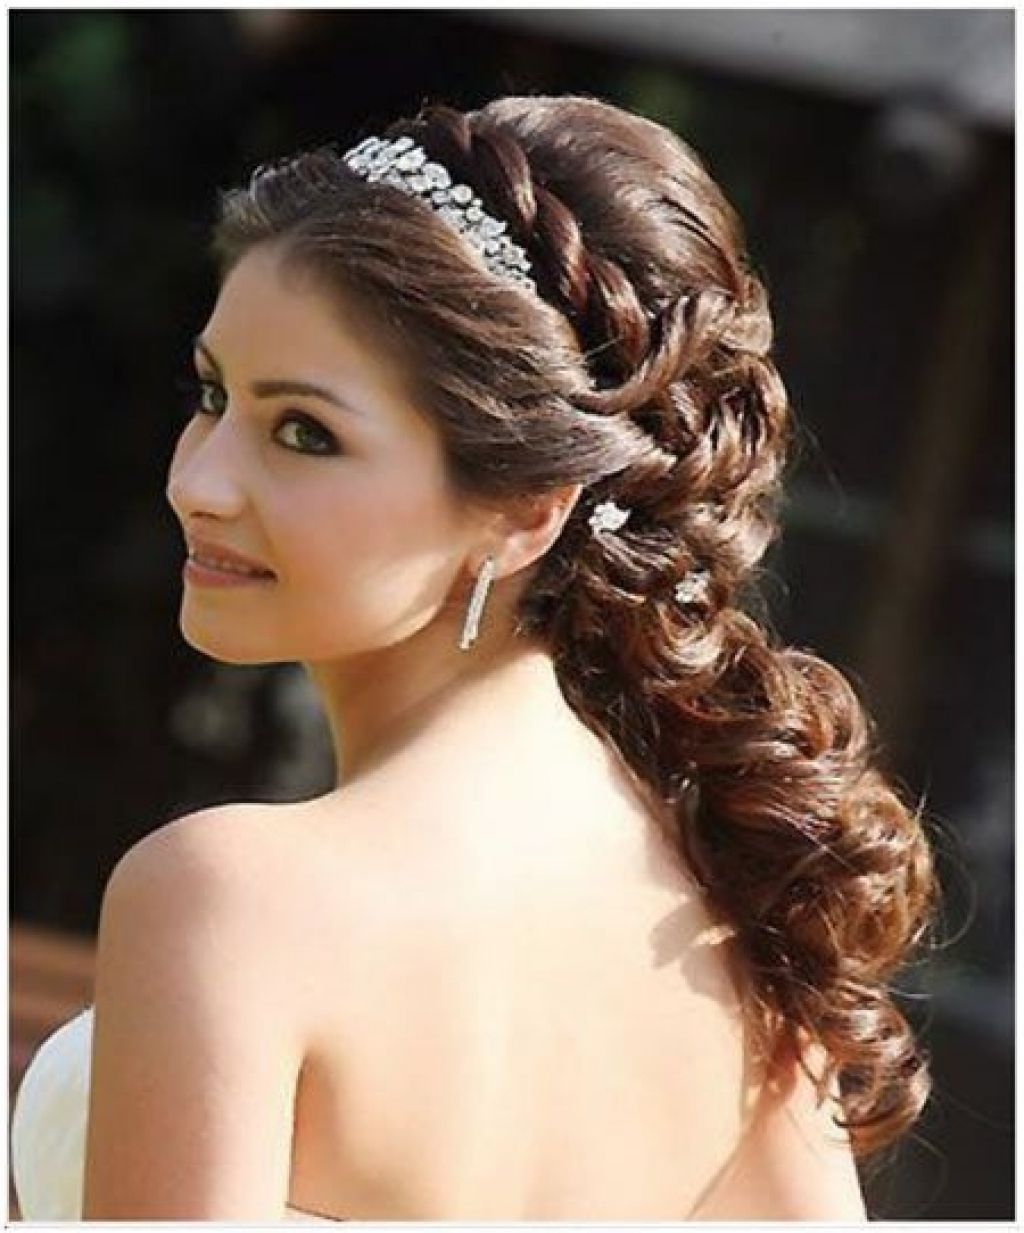 Best Indian Wedding Hairstyles For Christian Brides Our Top 11 Top Wedding Hairstyles For Long Indian Wedding Hairstyles Bridal Hair Images Wedding Hairstyles